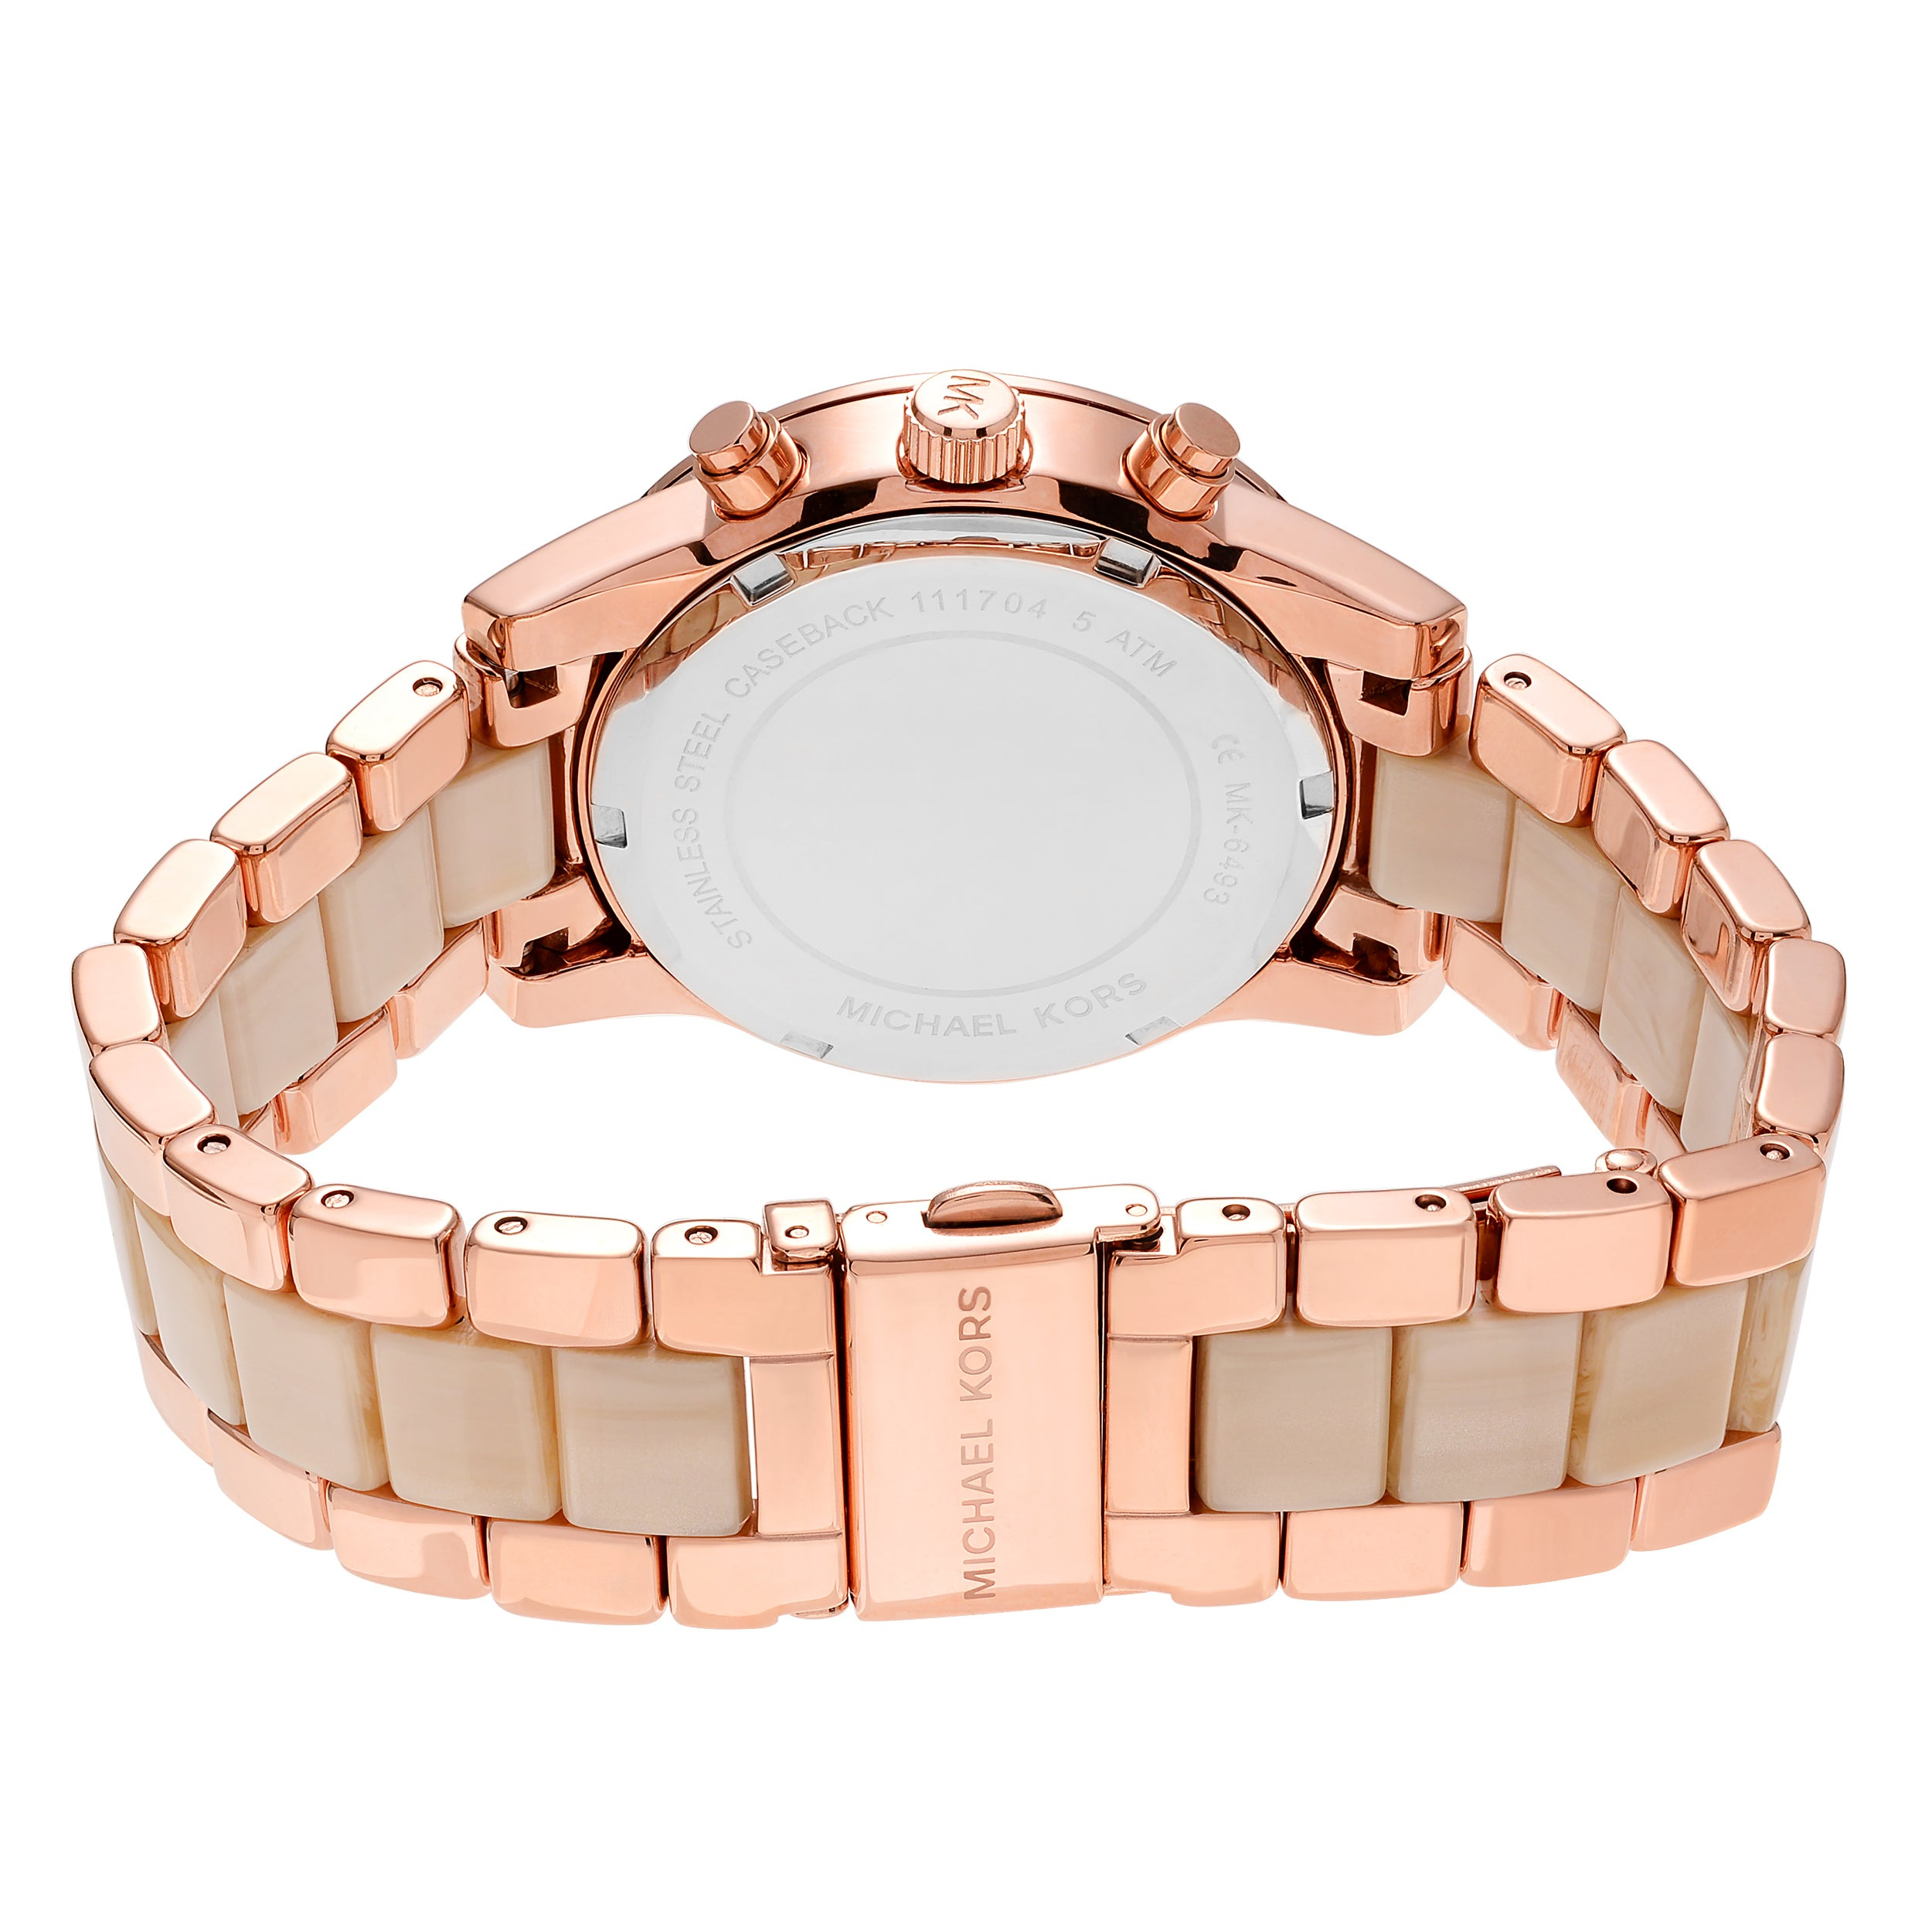 502bf7f78b56 Shop Michael Kors Women s MK6493  Ritz  Rose Goldtone Crystal Pave  Chronograph Bracelet Watch - Free Shipping Today - Overstock - 17908232